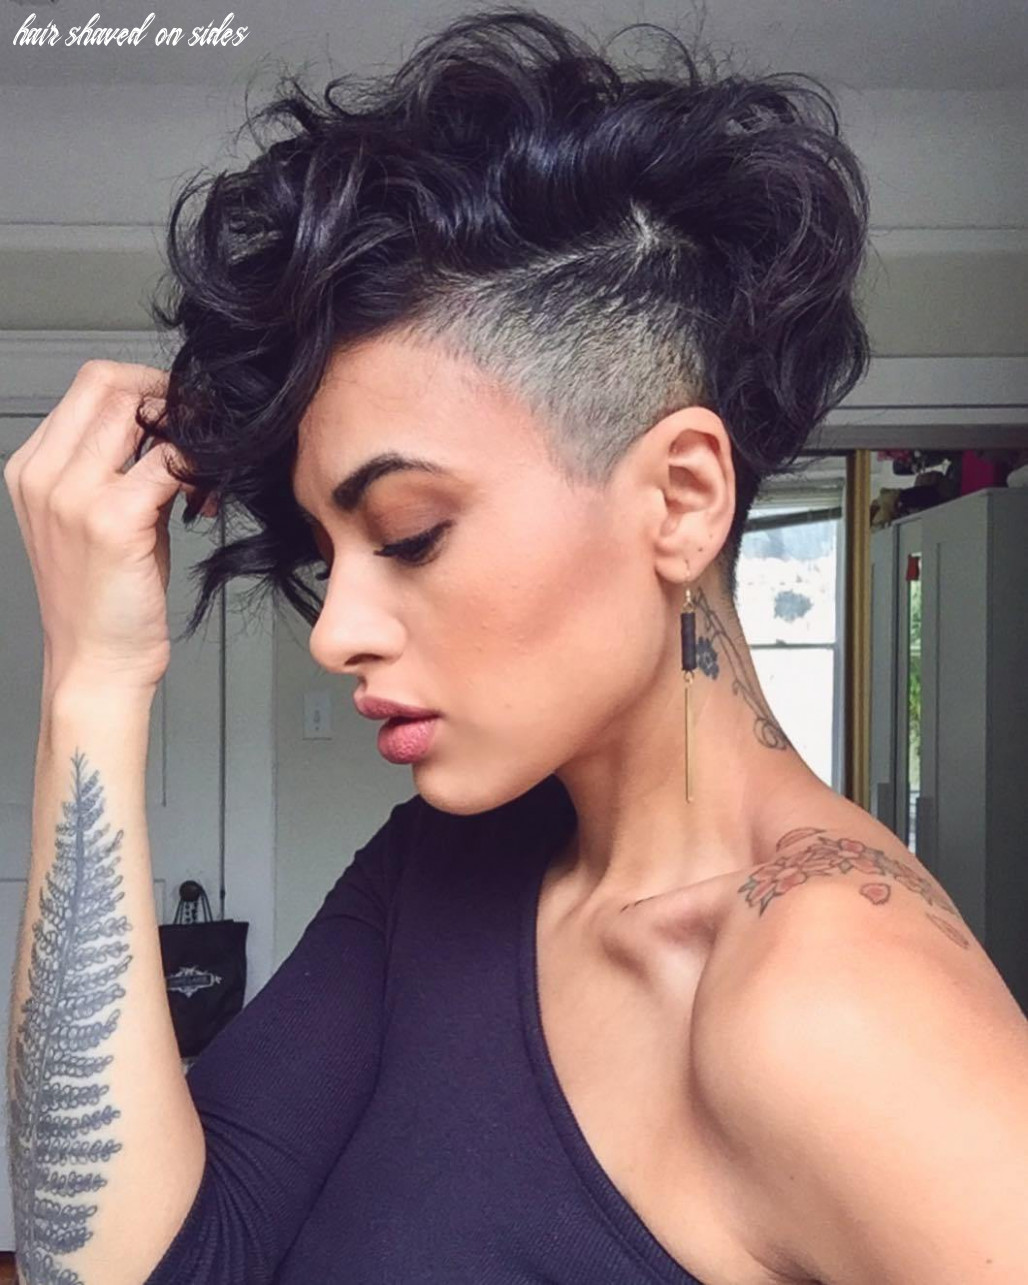 10 bold shaved hairstyles for women | shaved hair designs hair shaved on sides